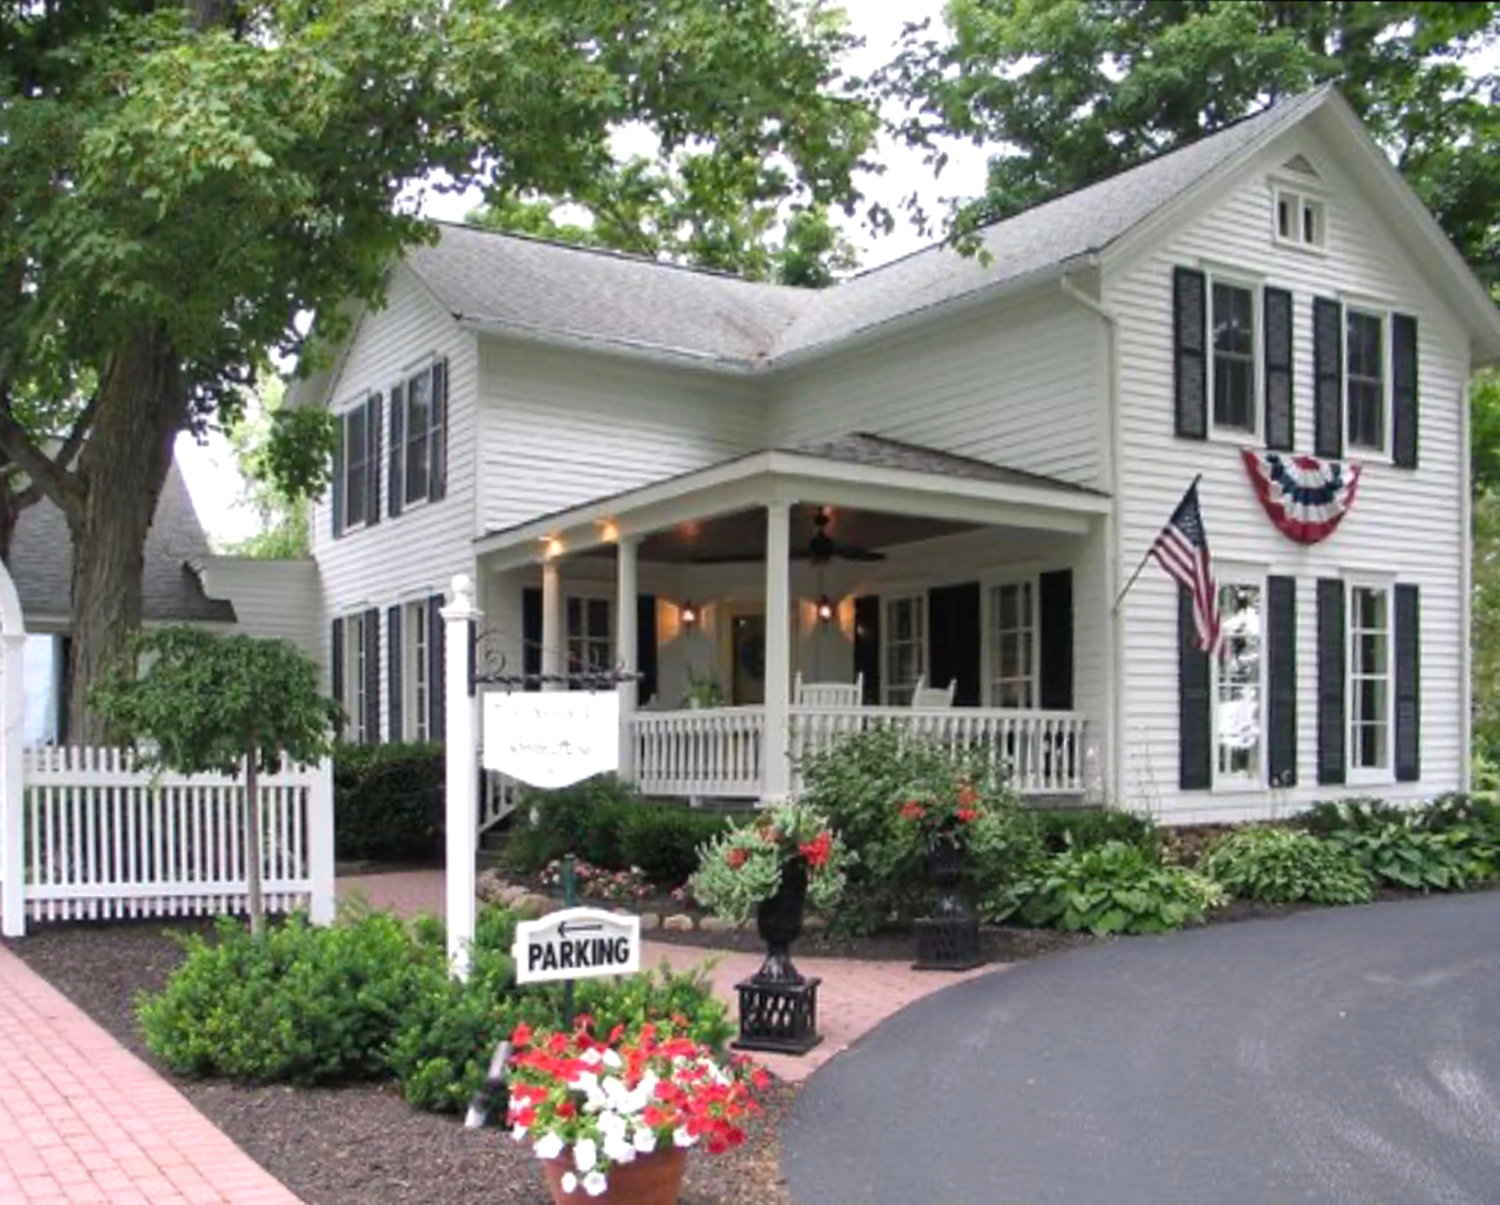 ARBOR INN — This 1850s country farm house, sitting on five acres of lush green countryside sits directly behind Hamilton College at 3919 Griffin Road, and is known to be perfect for parents or guests of students of Hamilton College or residents of Clinton and the Town of Kirkland.